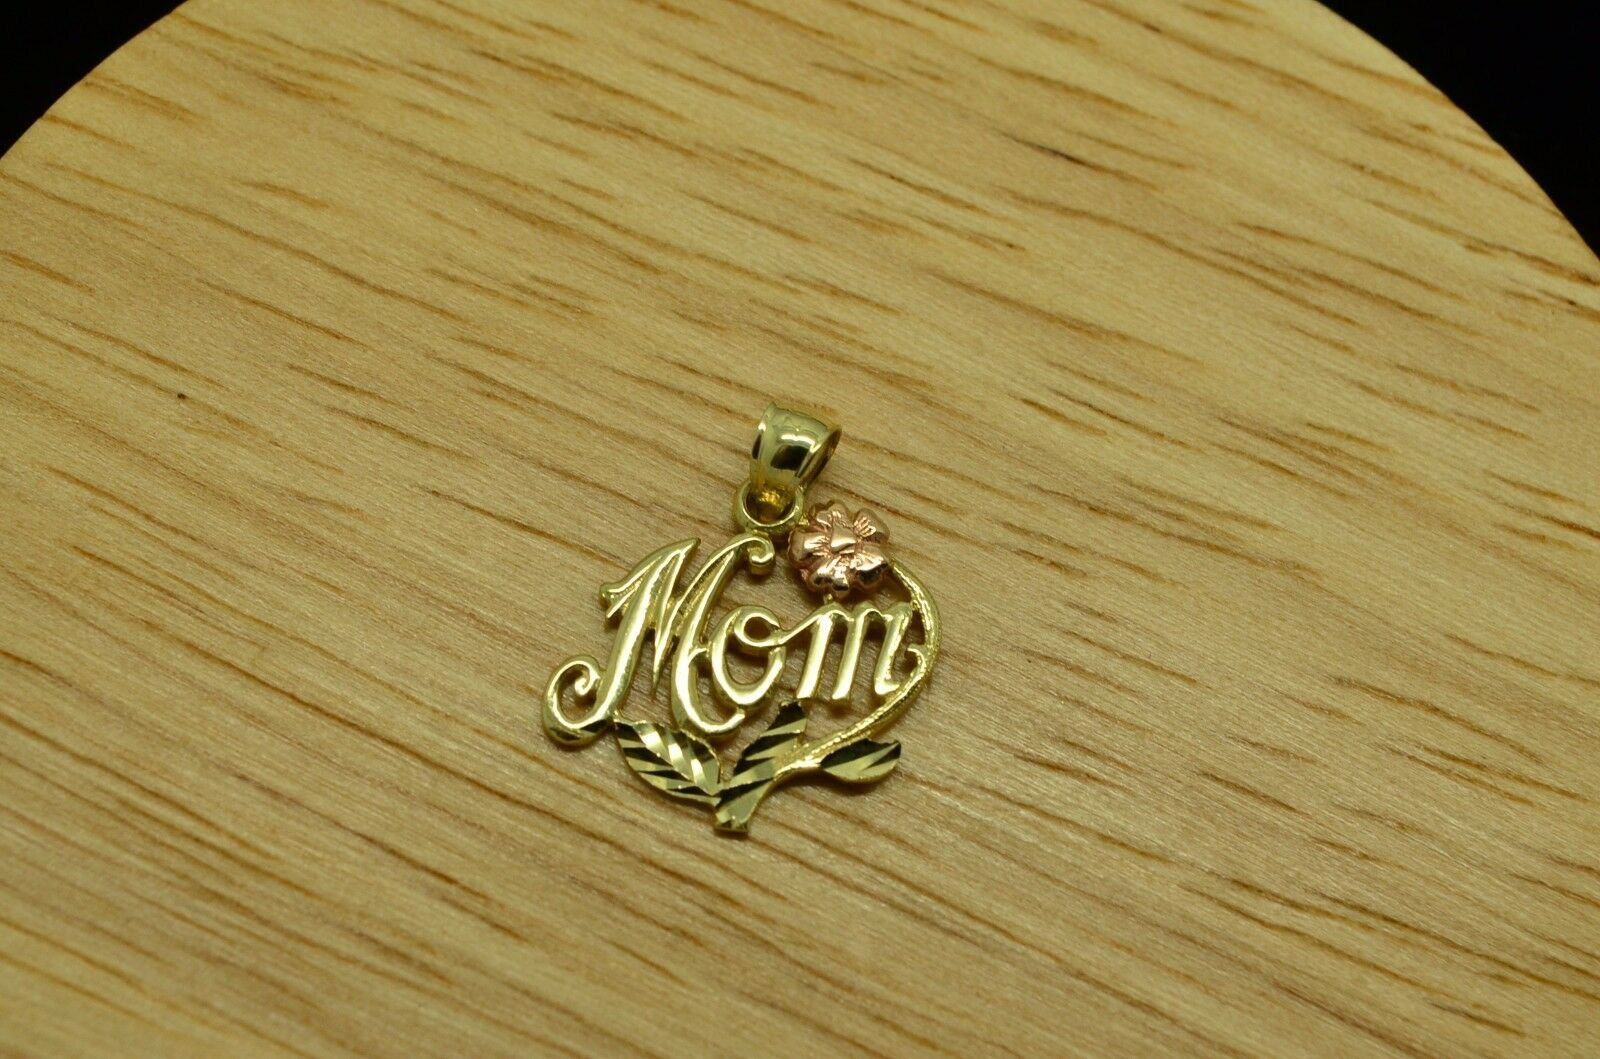 14K YELLOW gold  MOM  PENDANT CHARM W  pink gold pink FLOWER ACCENT  X14-1503